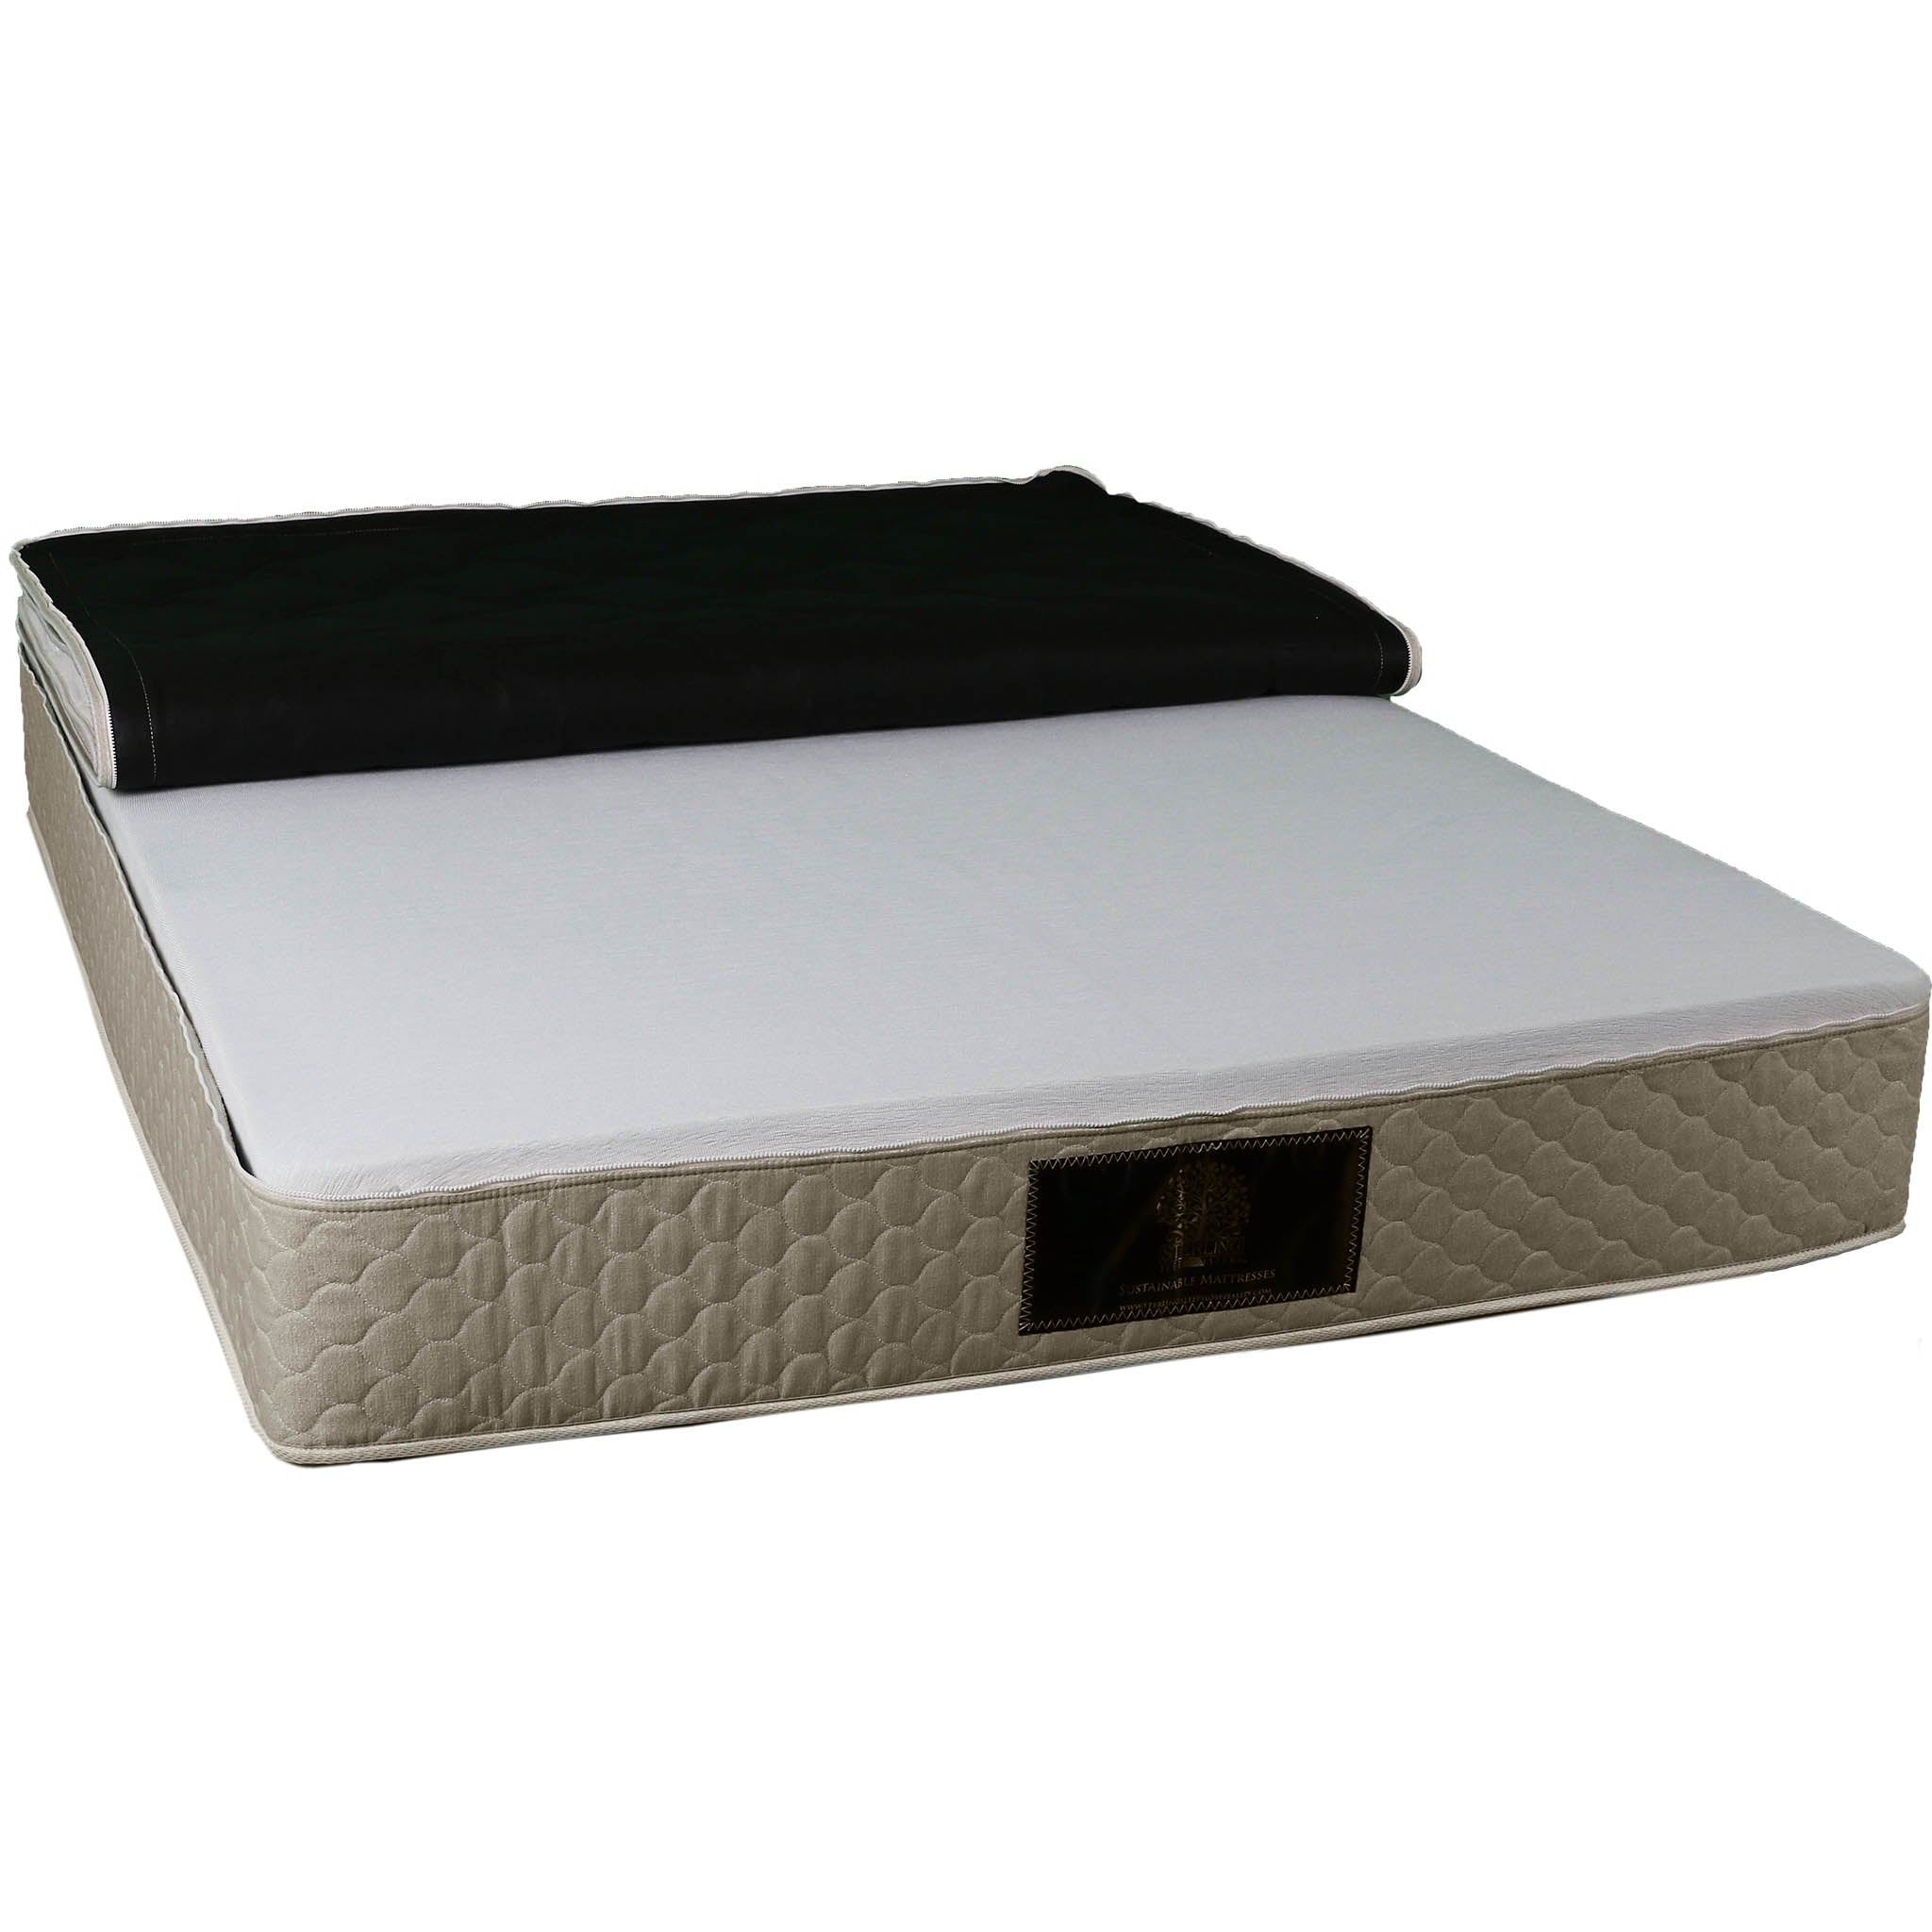 Hospitality 320/325 Mattress - Sterling Sleep Systems